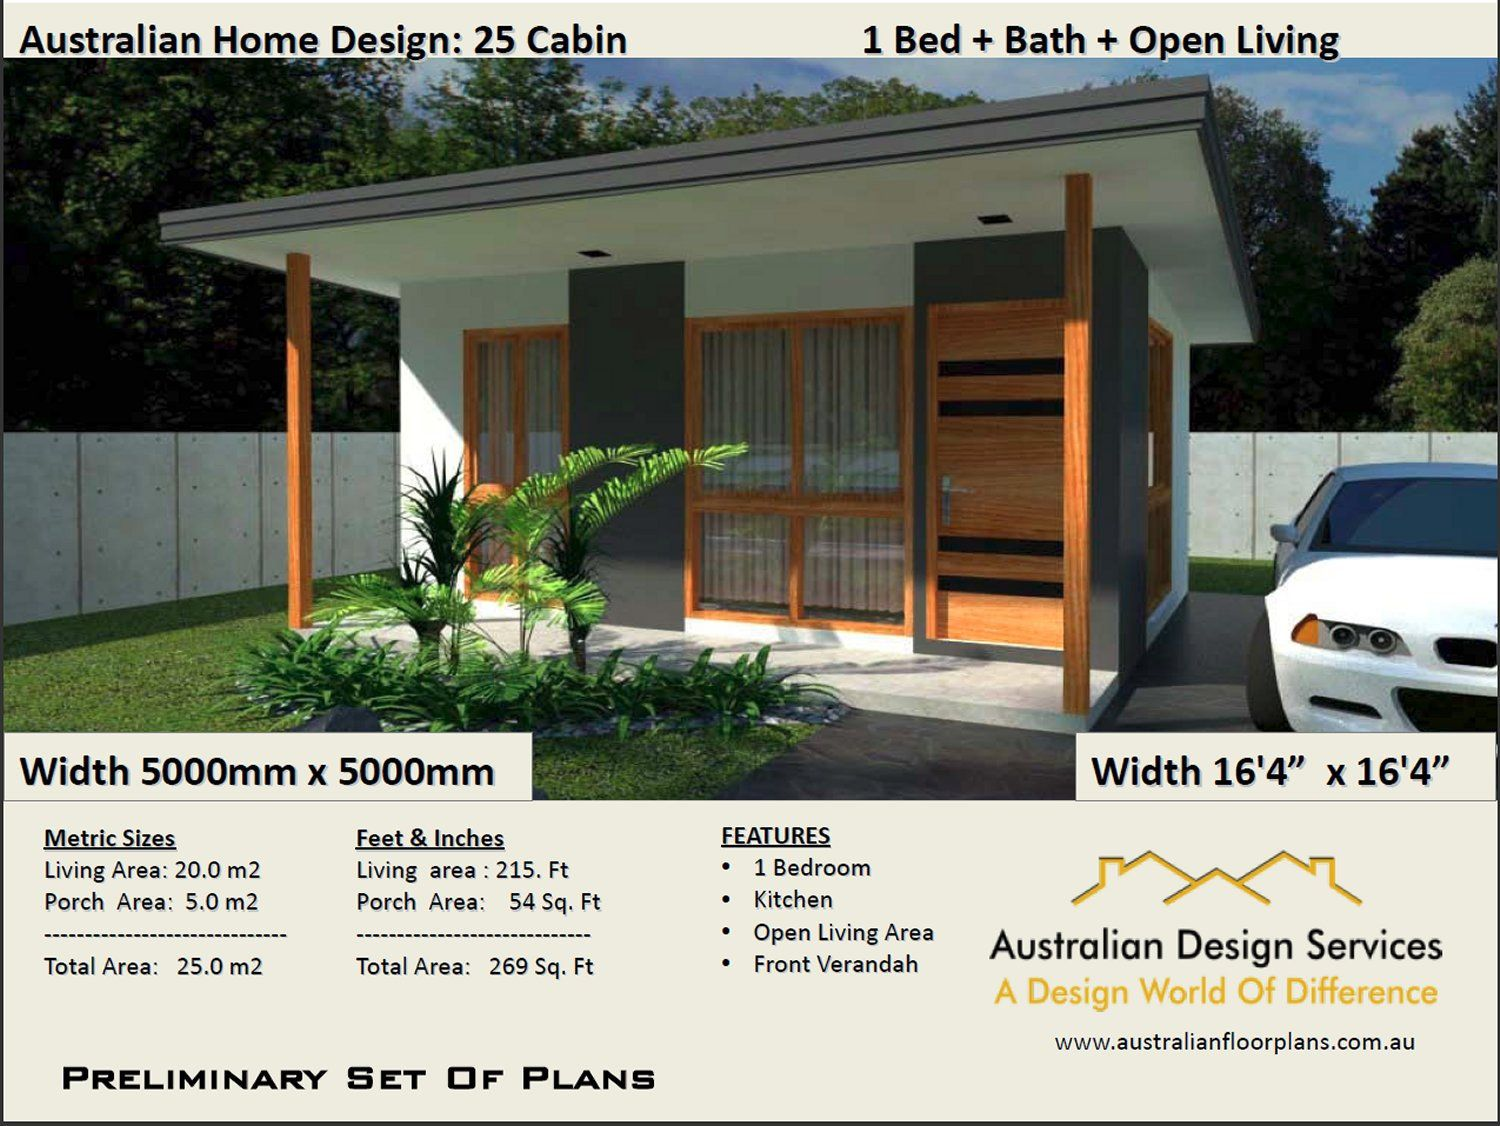 Small Cabin House Plan 25 Cabin 25 M2 269 Sq Foot 1 Etsy With Images Cabin House Plans Small House Design Small Cabin Plans